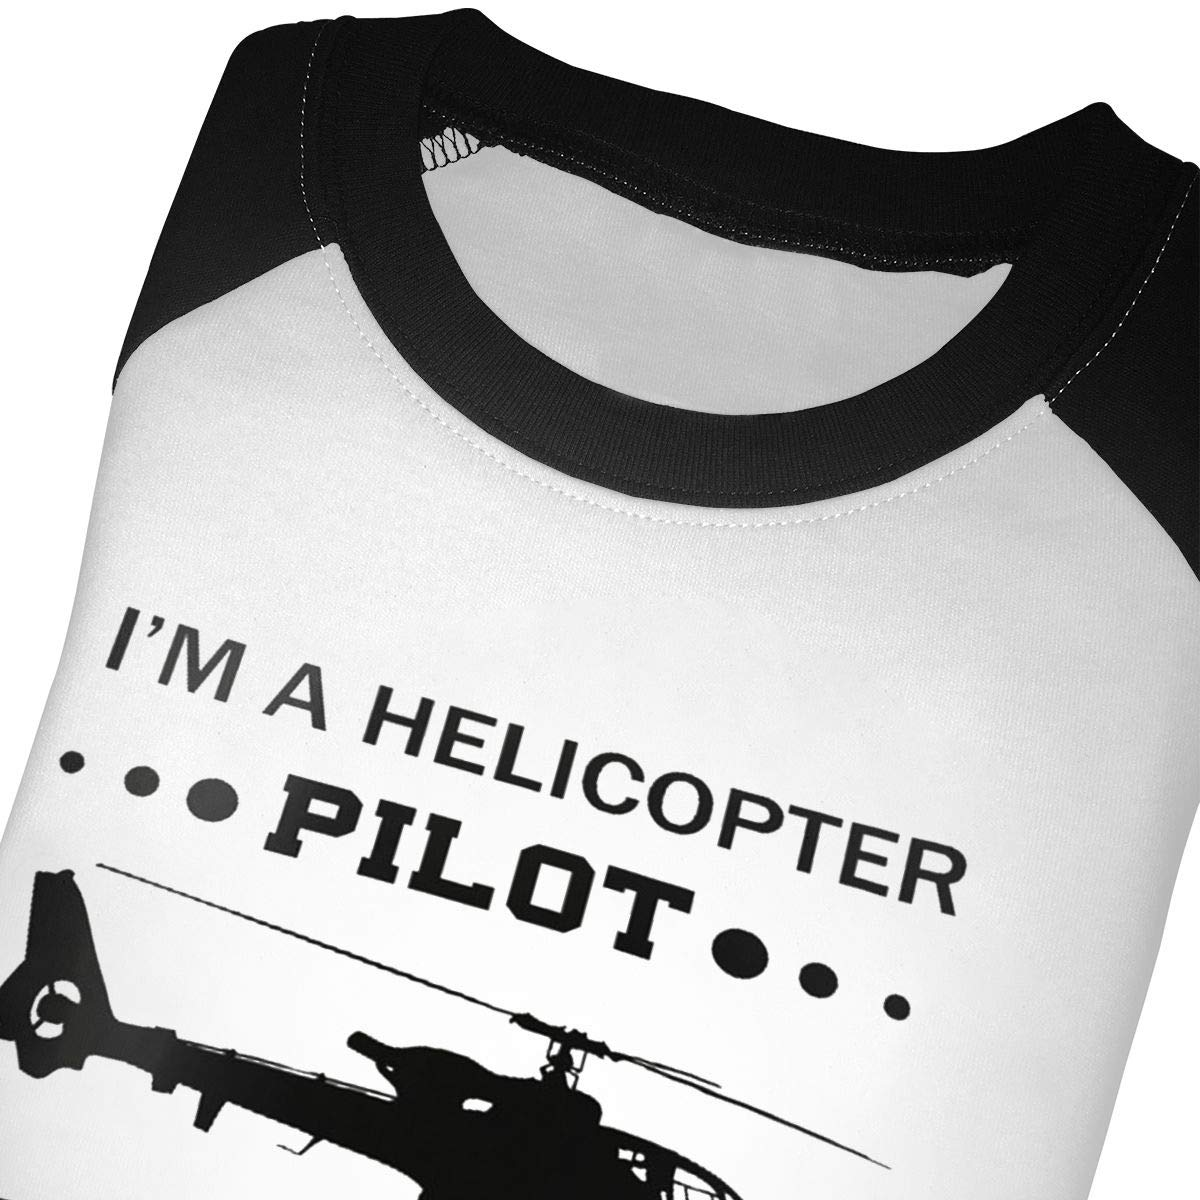 Manlee I M A Helicopter Pillot But Way Cooler Unisex 100/% Cotton Childrens 3//4 Sleeves T-Shirt Top Tees 2T~5//6T